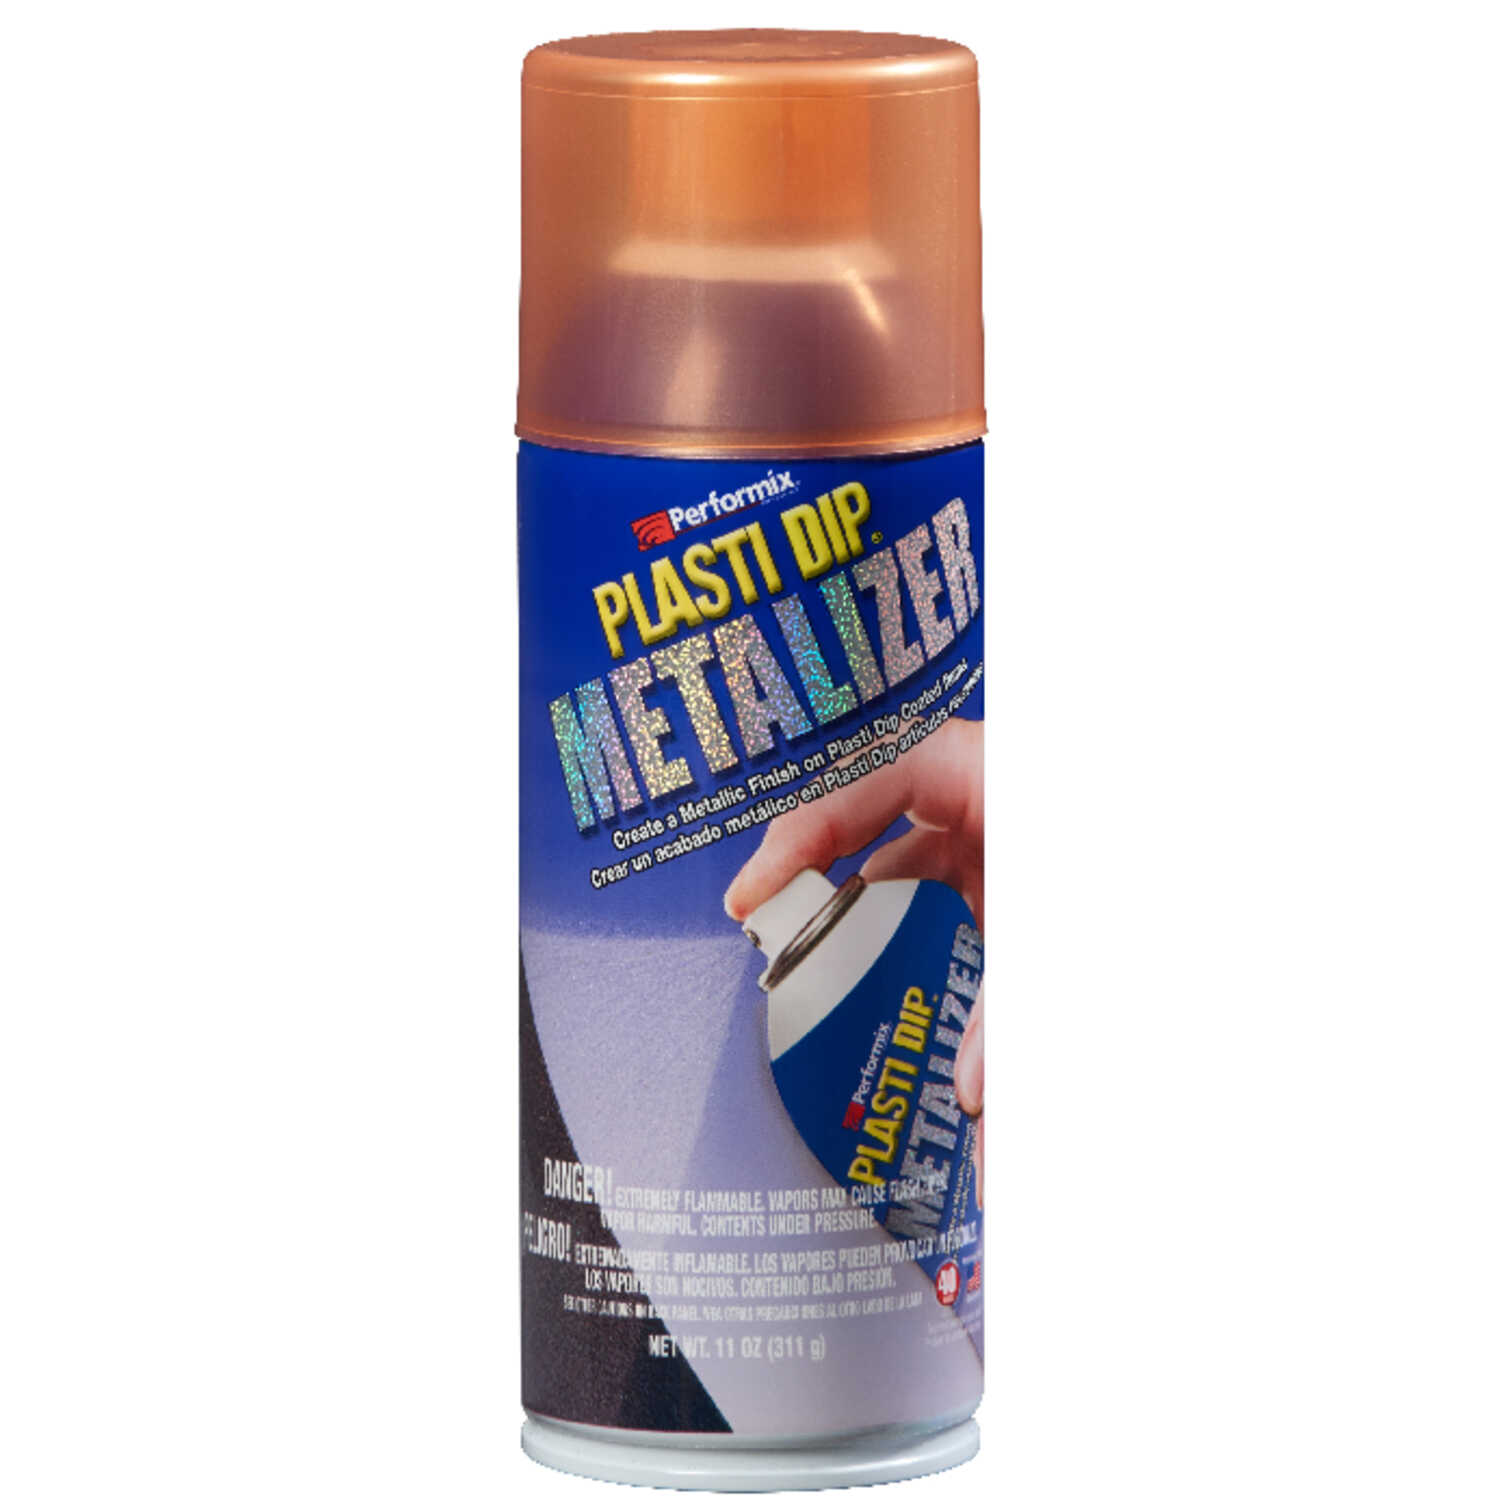 Plasti Dip  Metalizer  Satin  Copper  Multi-Purpose Rubber Coating  11 oz